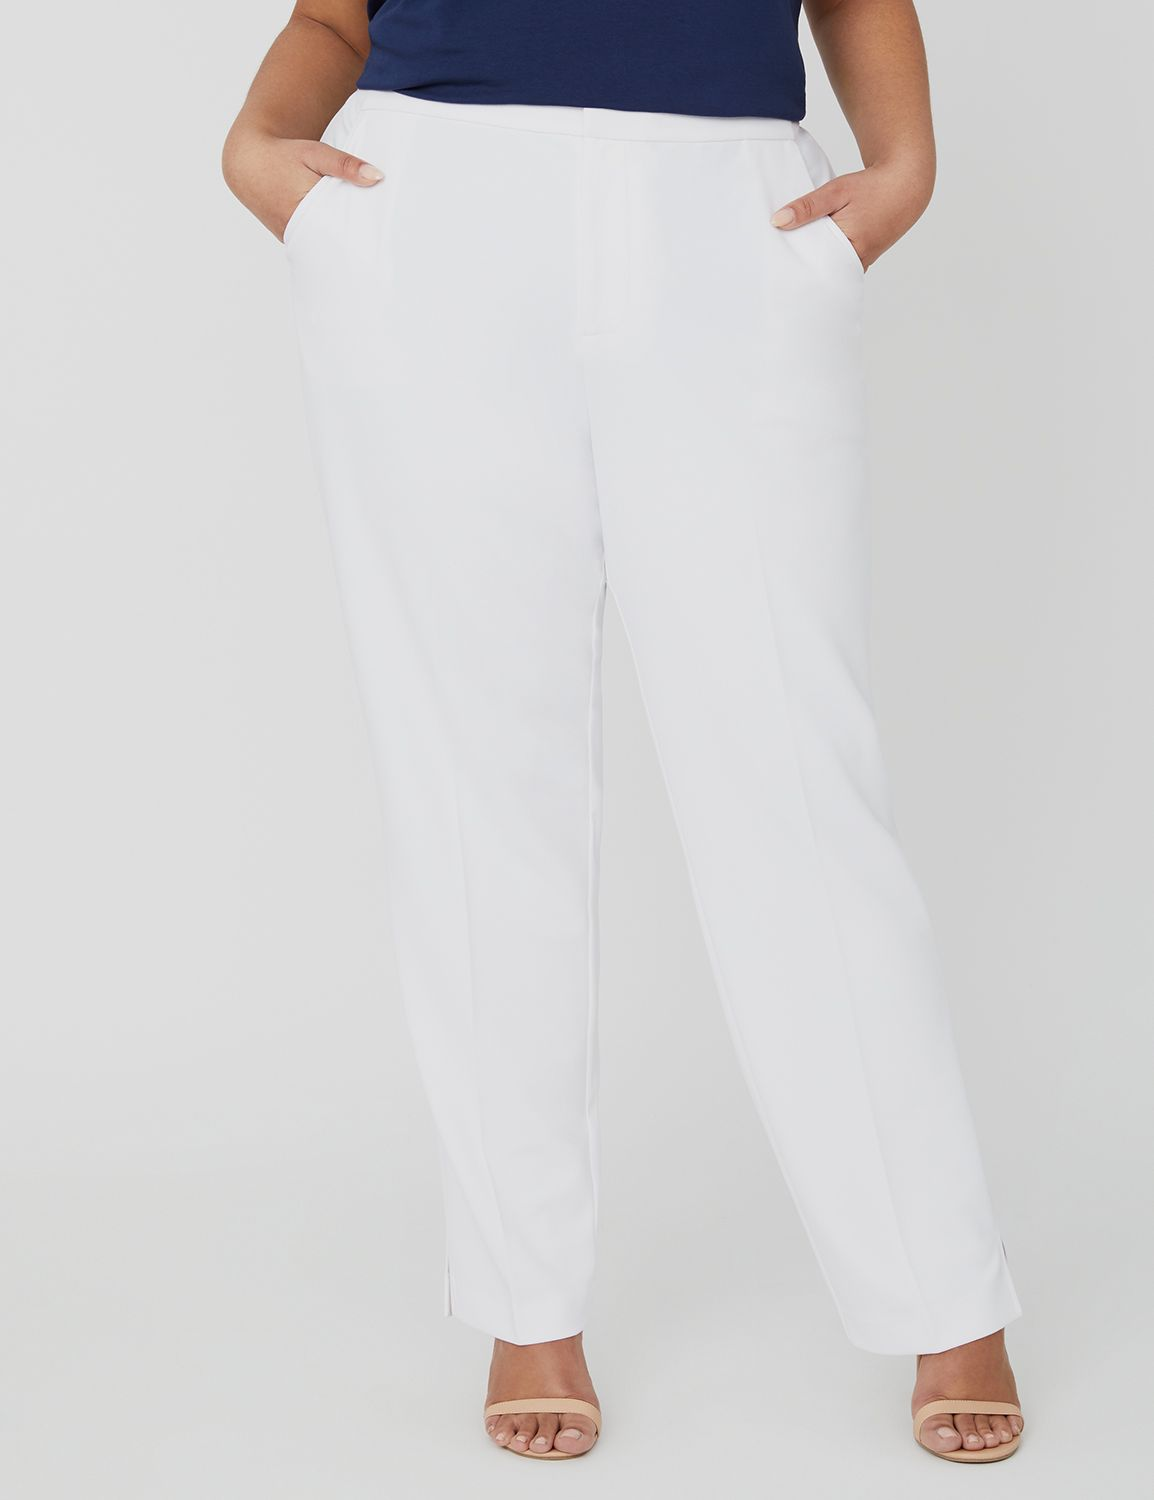 Black Label Soft Crepe Pant 1088525 Soft Crepe Pant with Elasti MP-300098649